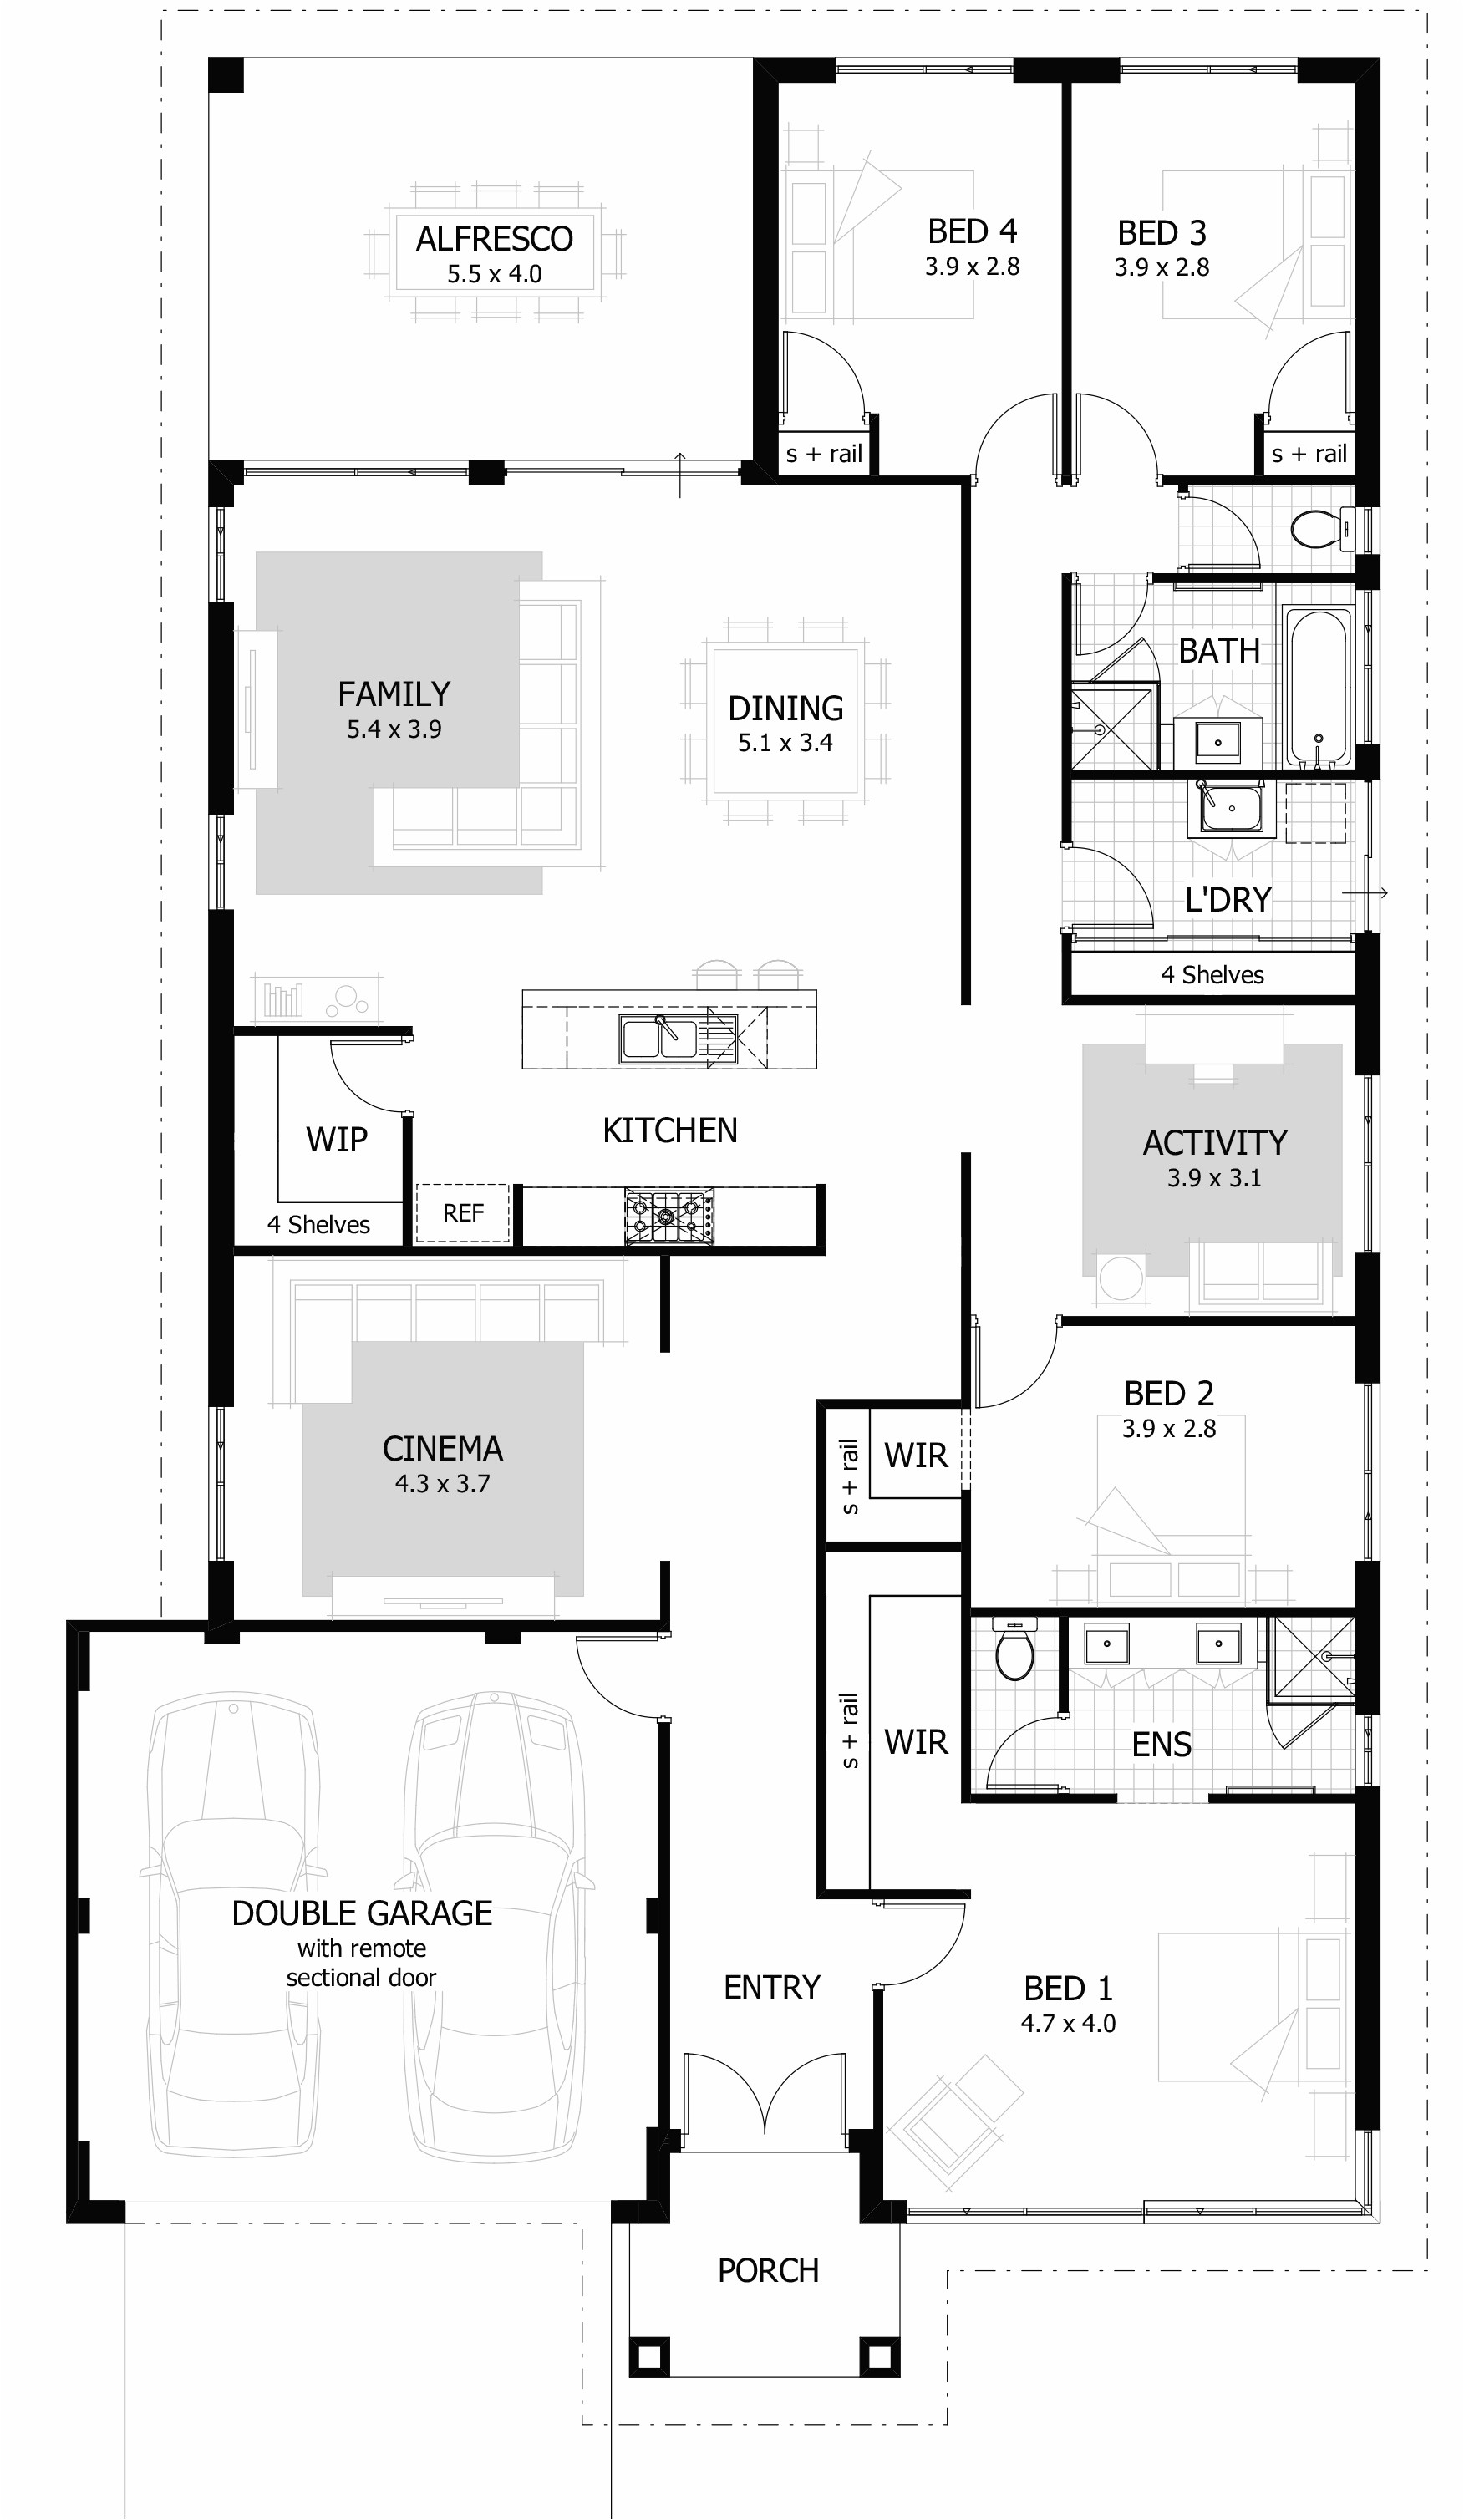 houses floor plans the best 4 bedroom house plans amp home designs